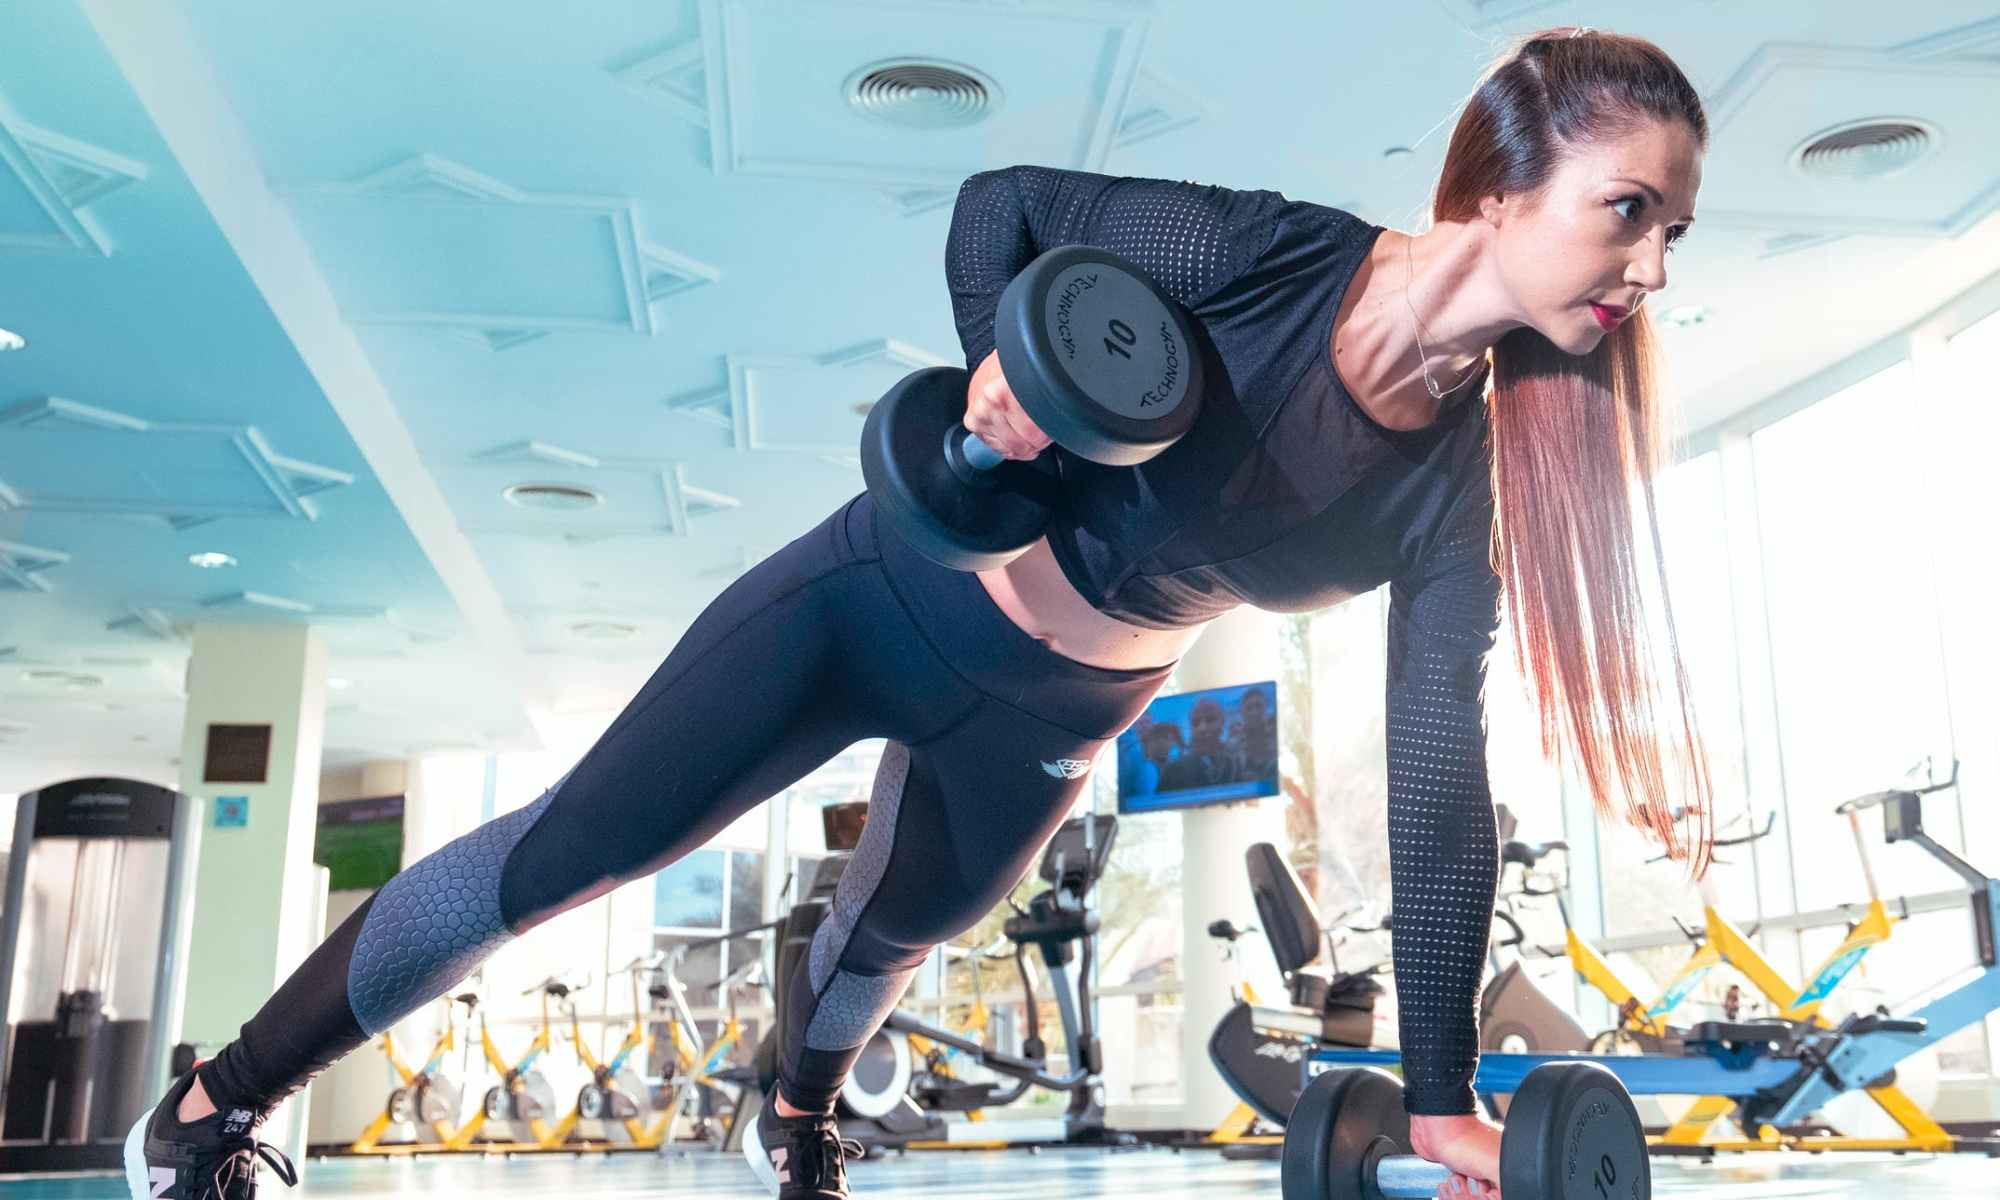 White woman dressed in black outfit working out with weights in gym